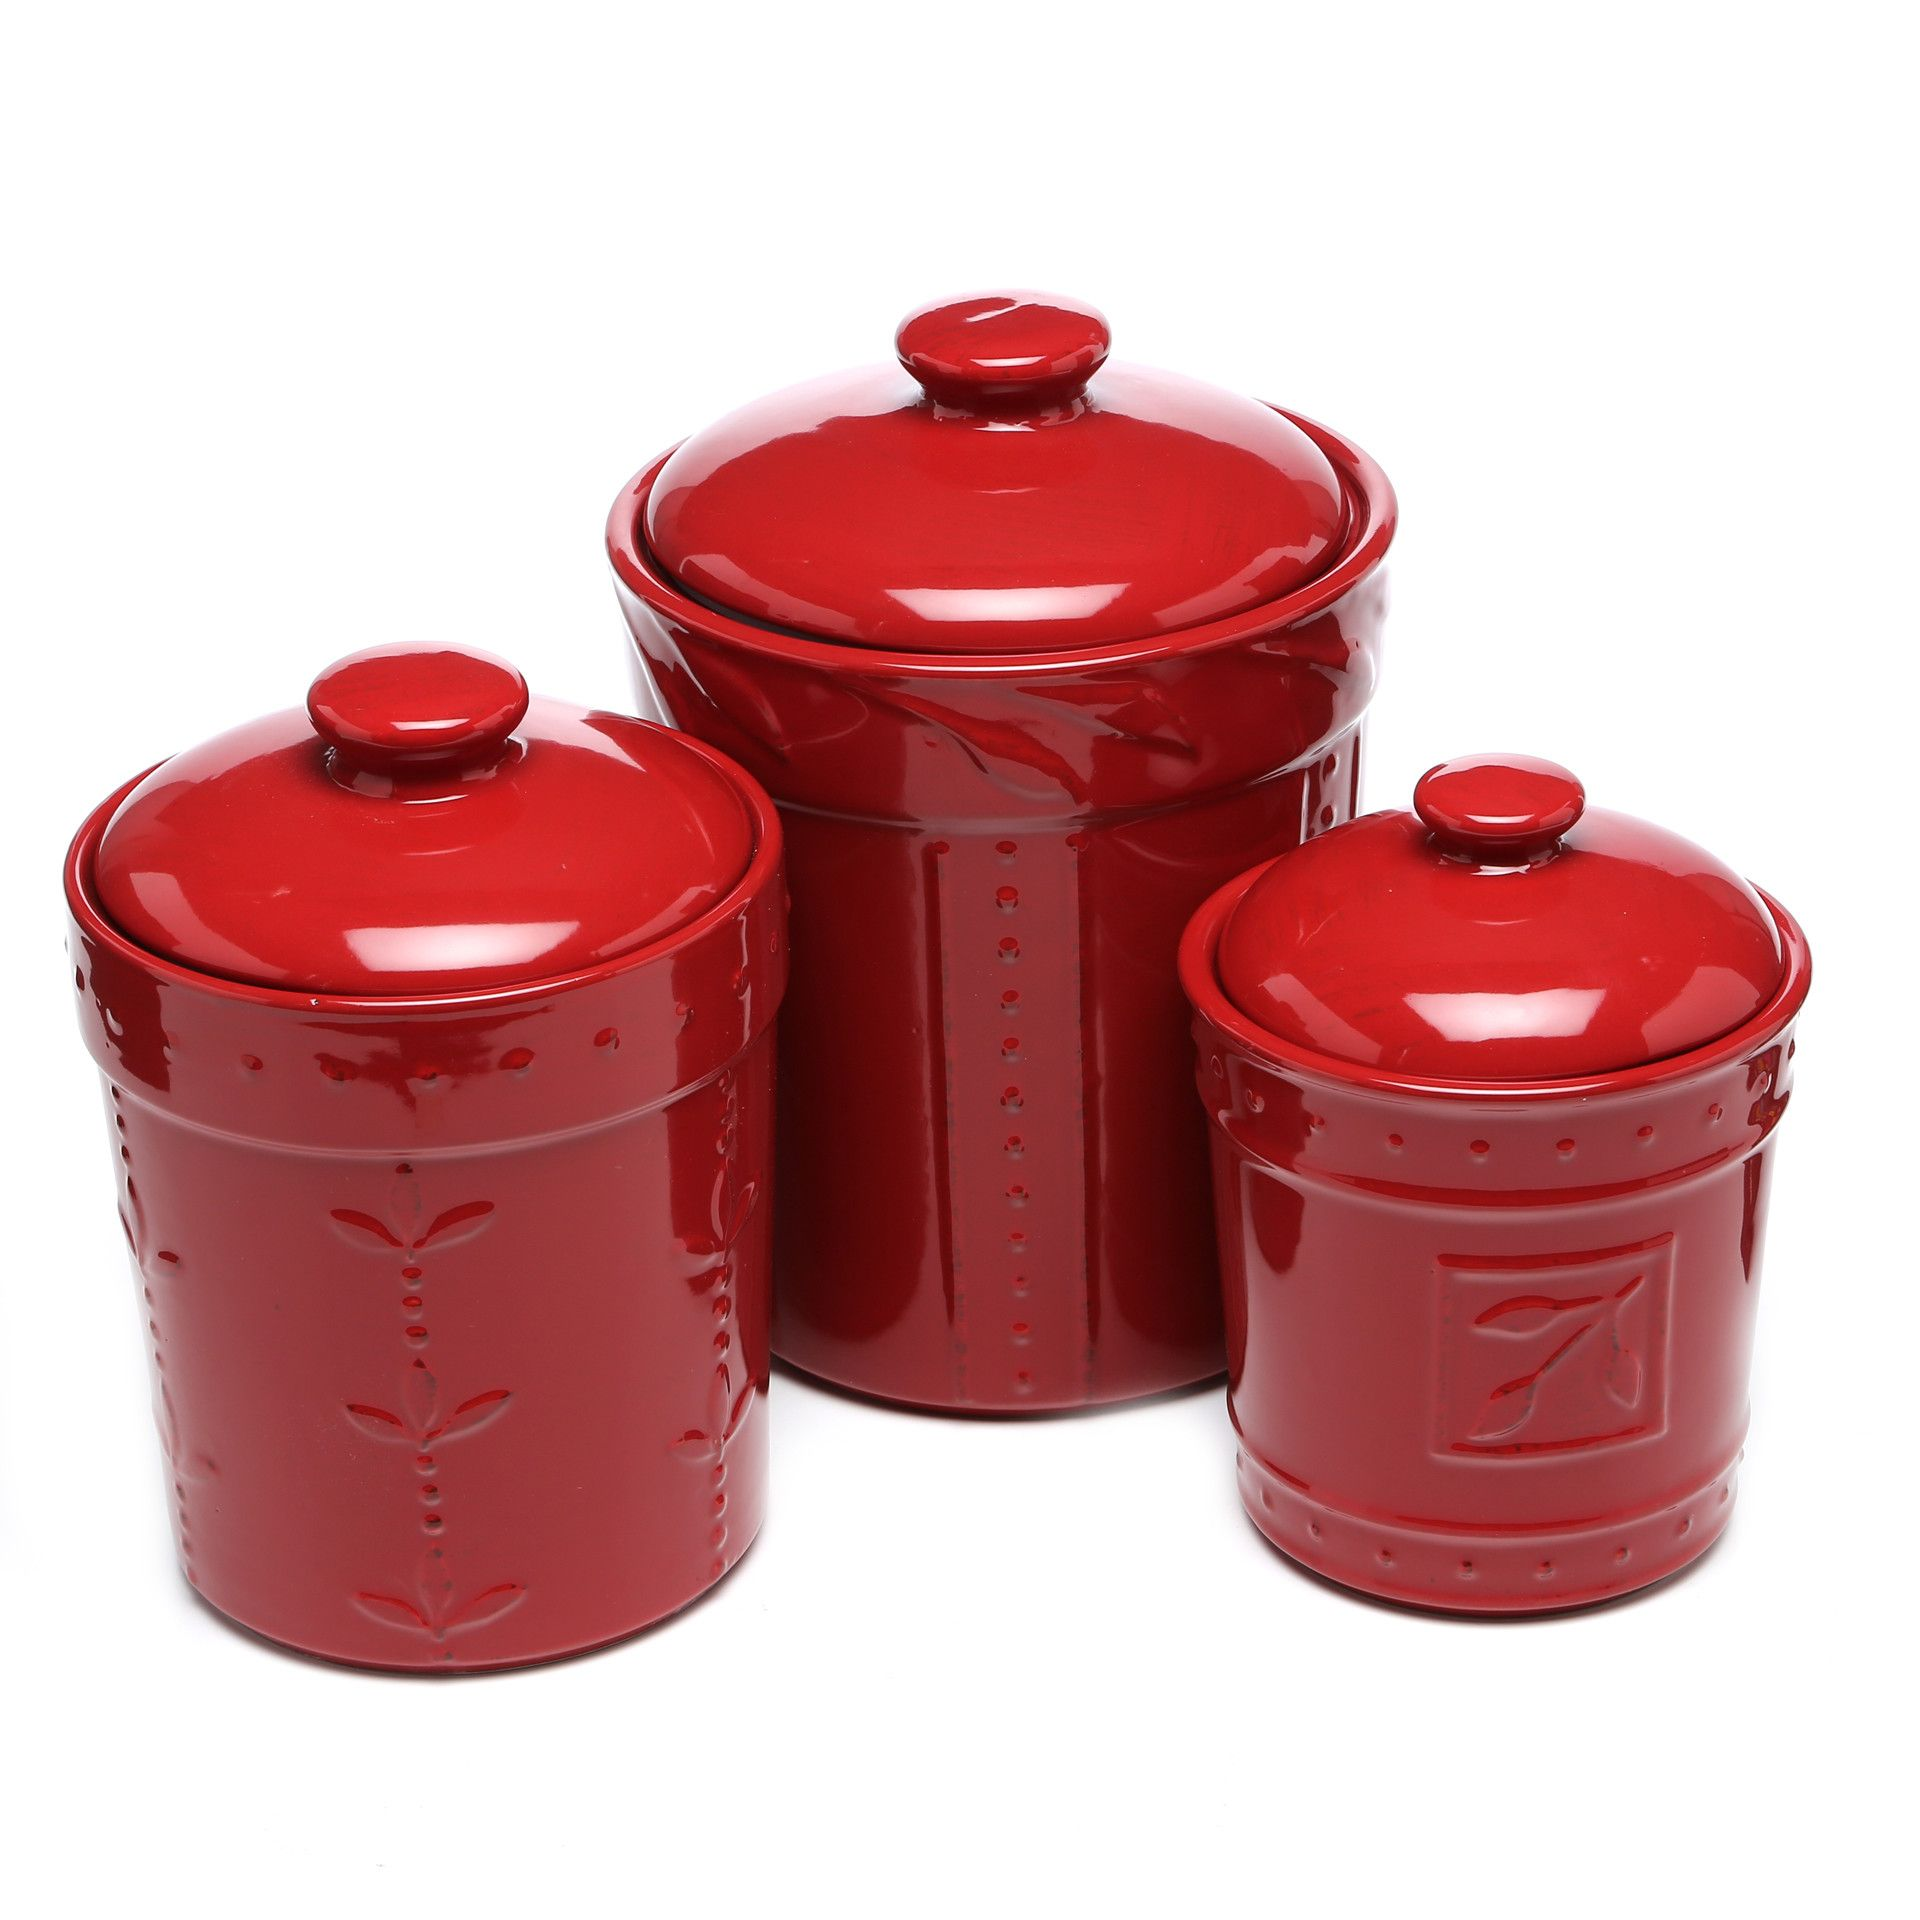 Tuscan old world drake design medium berry kitchen canisters set of 3 - Abigail 3 Piece Canister Lid Set